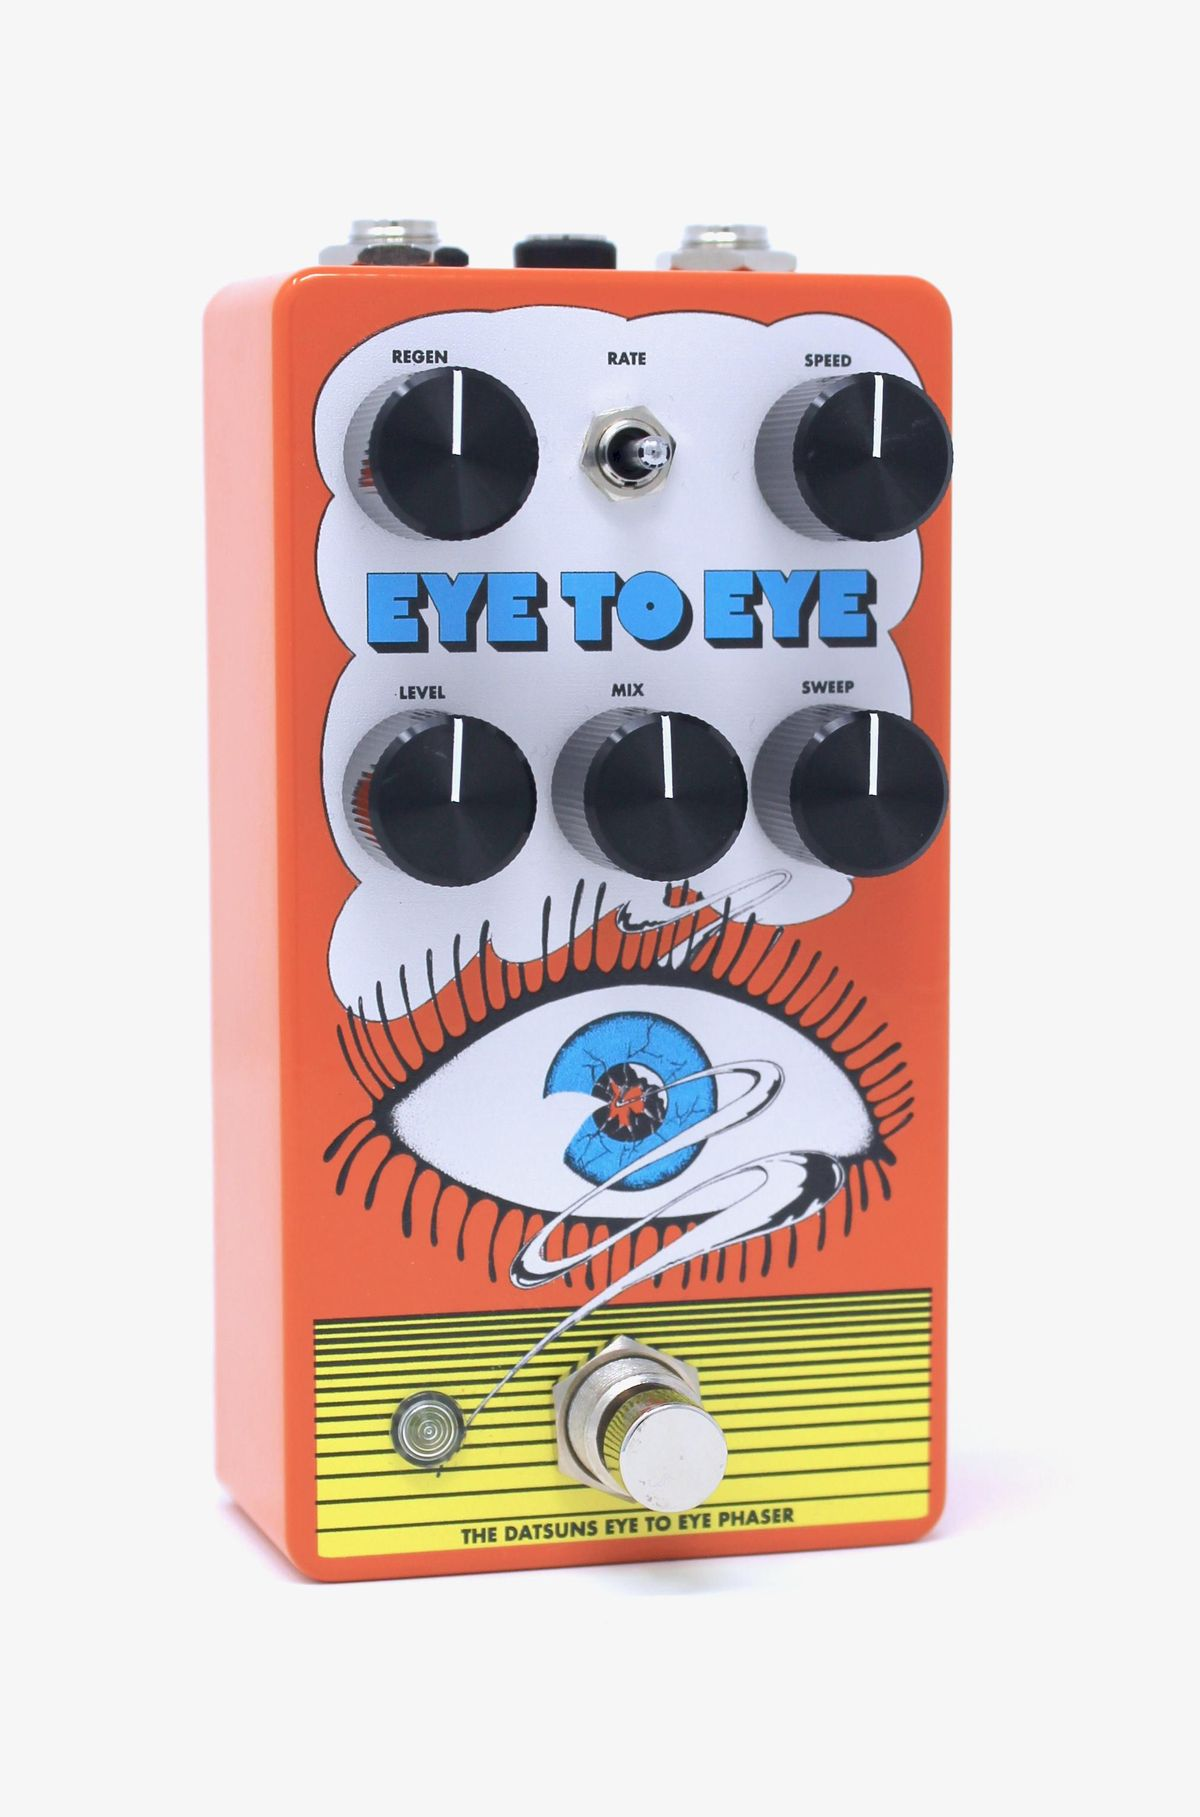 Magnetic Effects and The Datsuns Collaborate on Eye To Eye Phaser